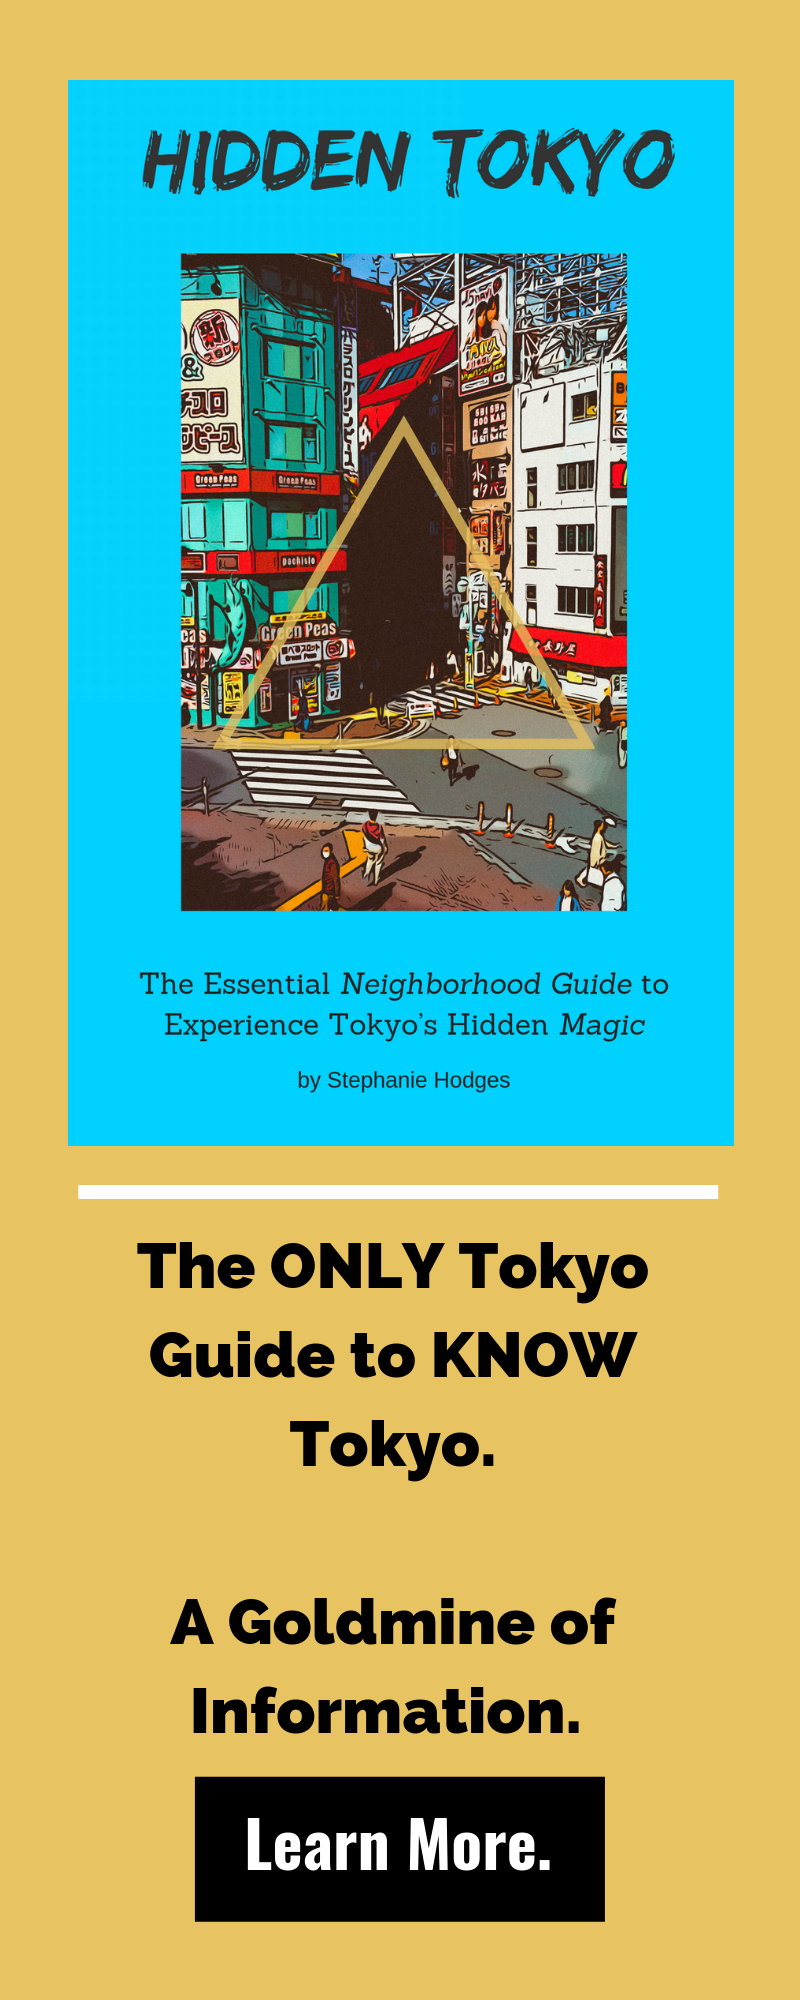 hidden tokyo neighborhood guide